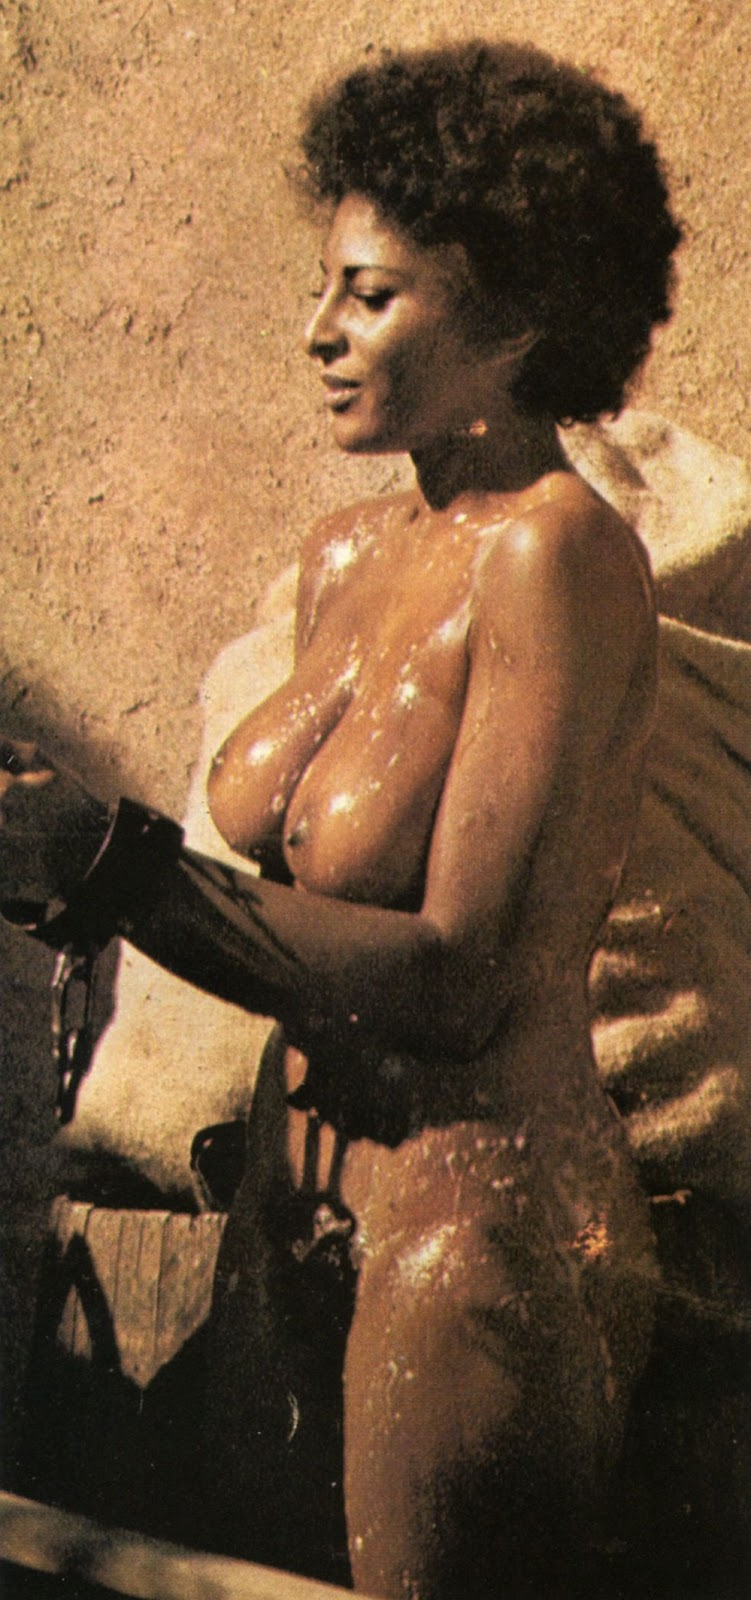 pam-grier-hot-nude-sex-craft-fuck-the-universe-blogspot